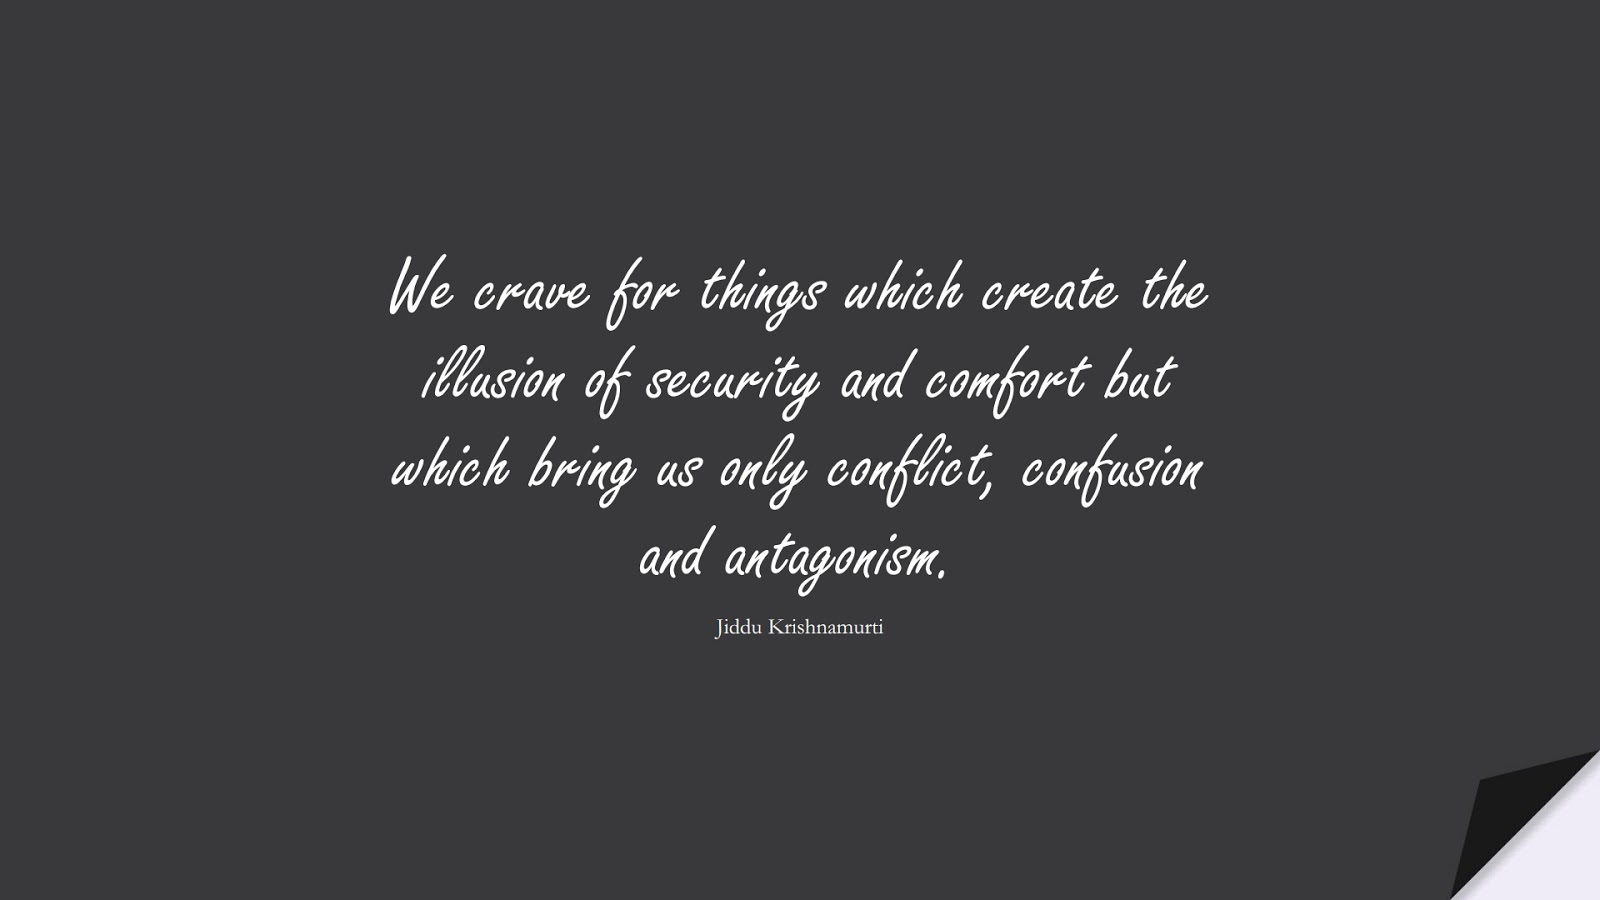 We crave for things which create the illusion of security and comfort but which bring us only conflict, confusion and antagonism. (Jiddu Krishnamurti);  #DepressionQuotes